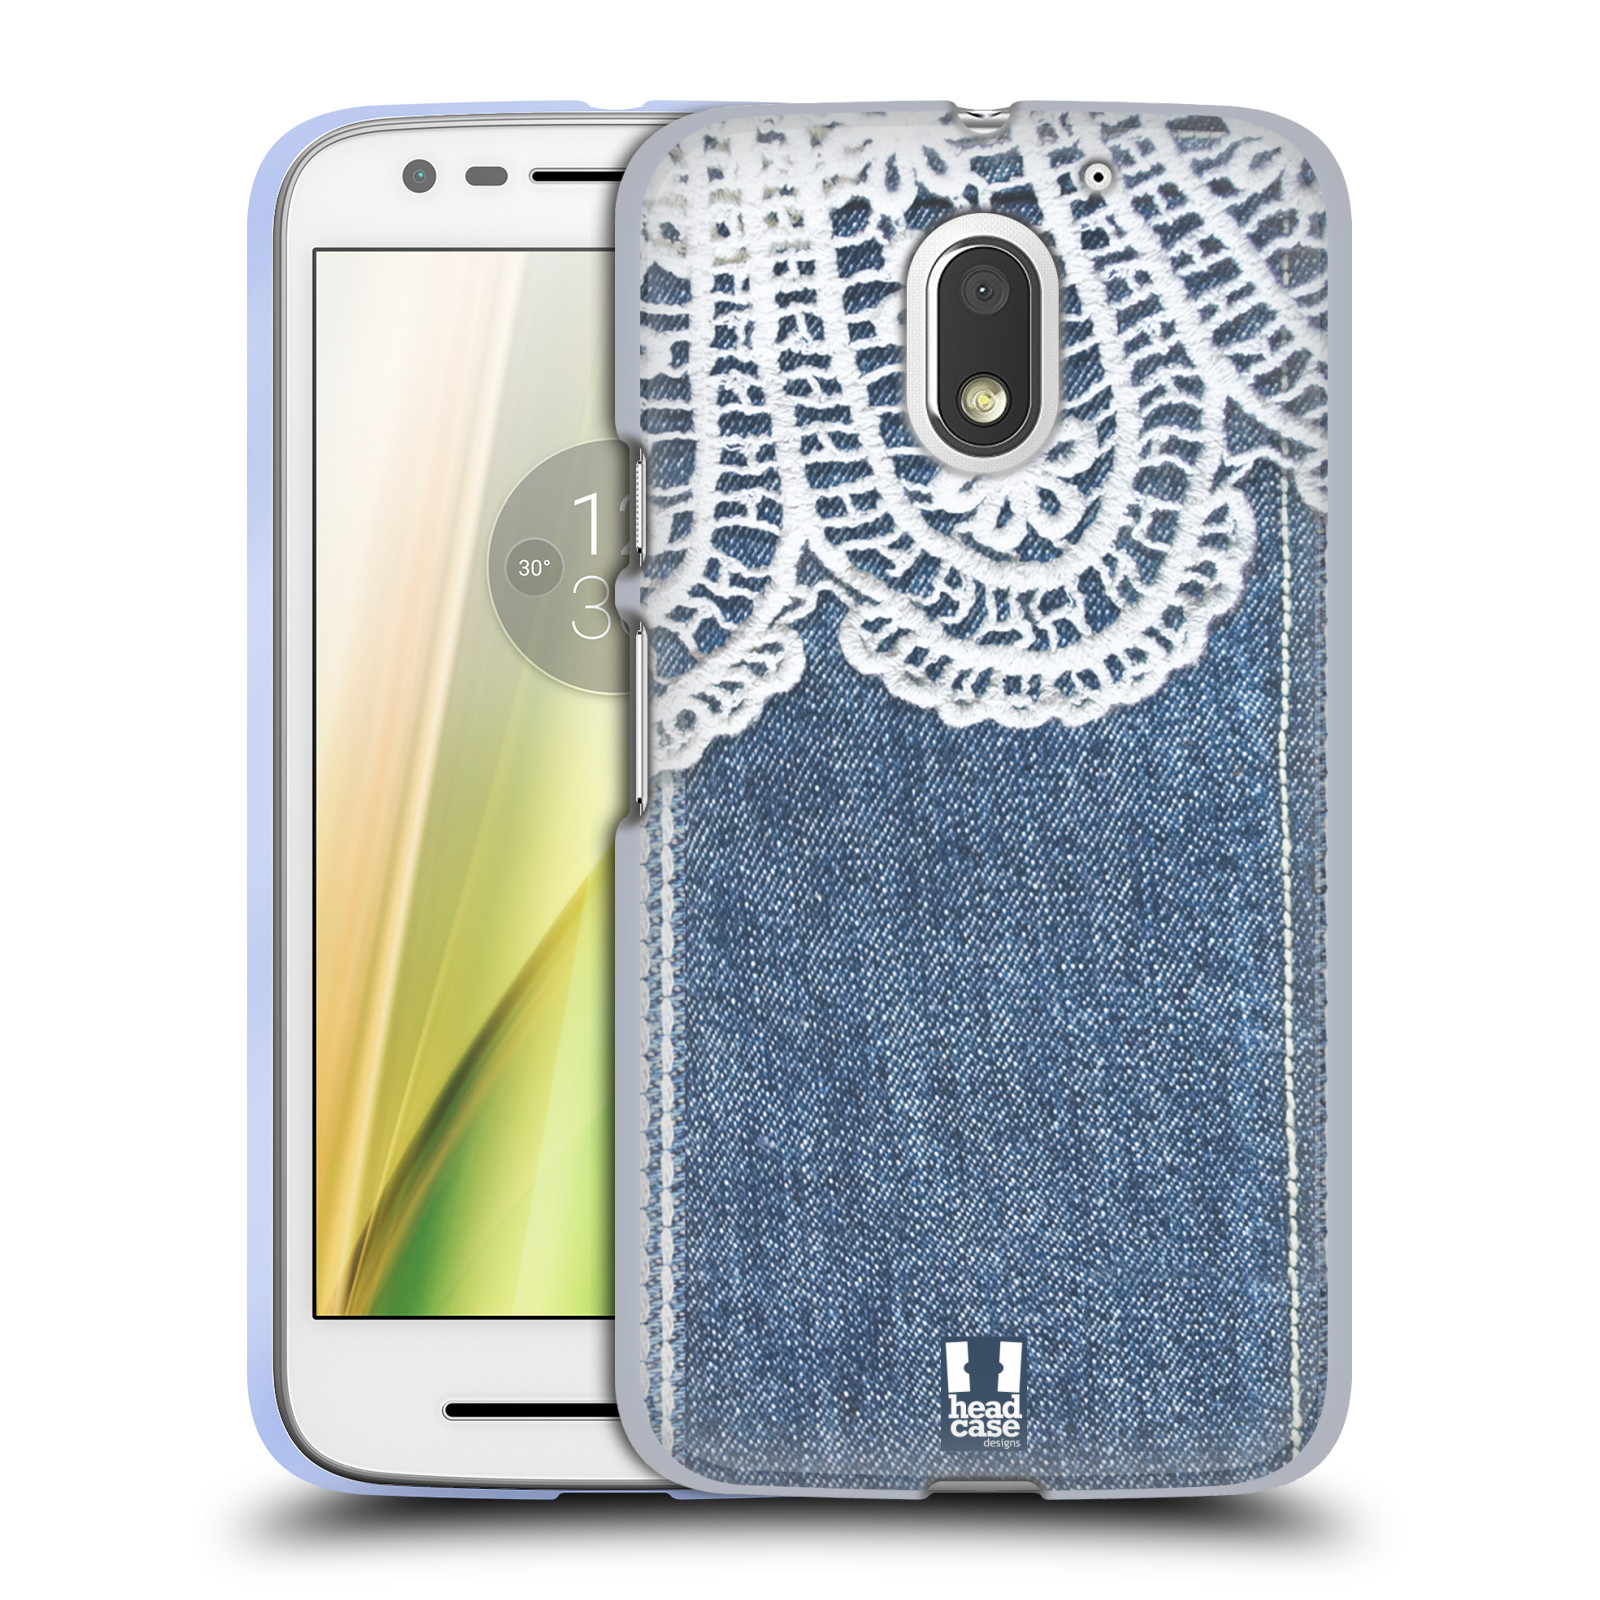 HEAD-CASE-DESIGNS-JEANS-ET-LACETS-ETUI-COQUE-EN-GEL-POUR-MOTOROLA-MOTO-E3-POWER